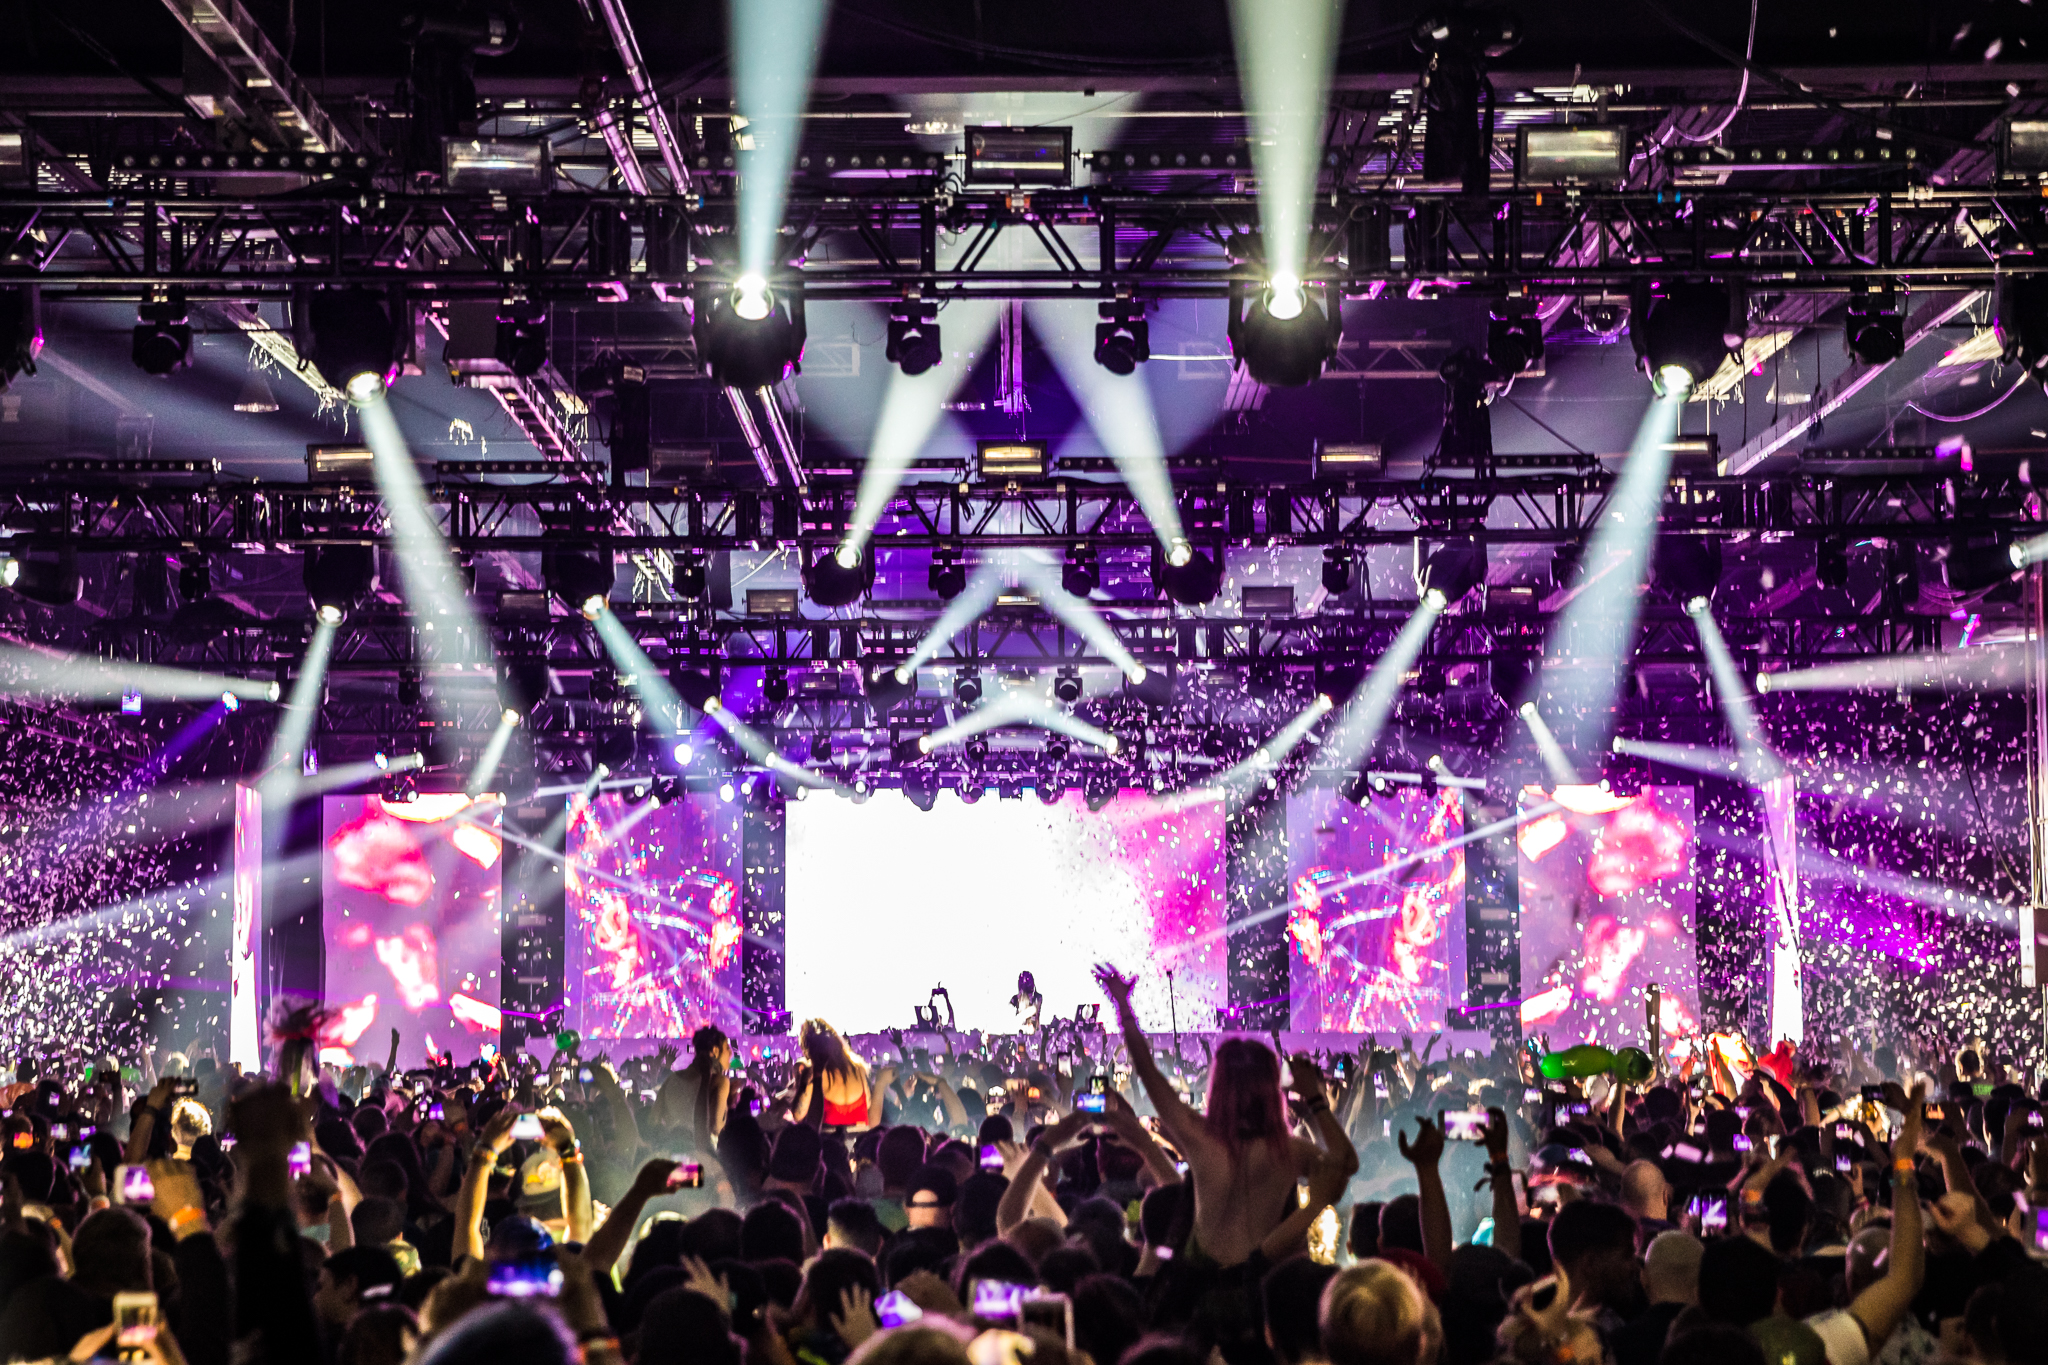 BASSNECTAR_CHI2018_0330_215548-6006_ALIVECOVERAGE.jpg